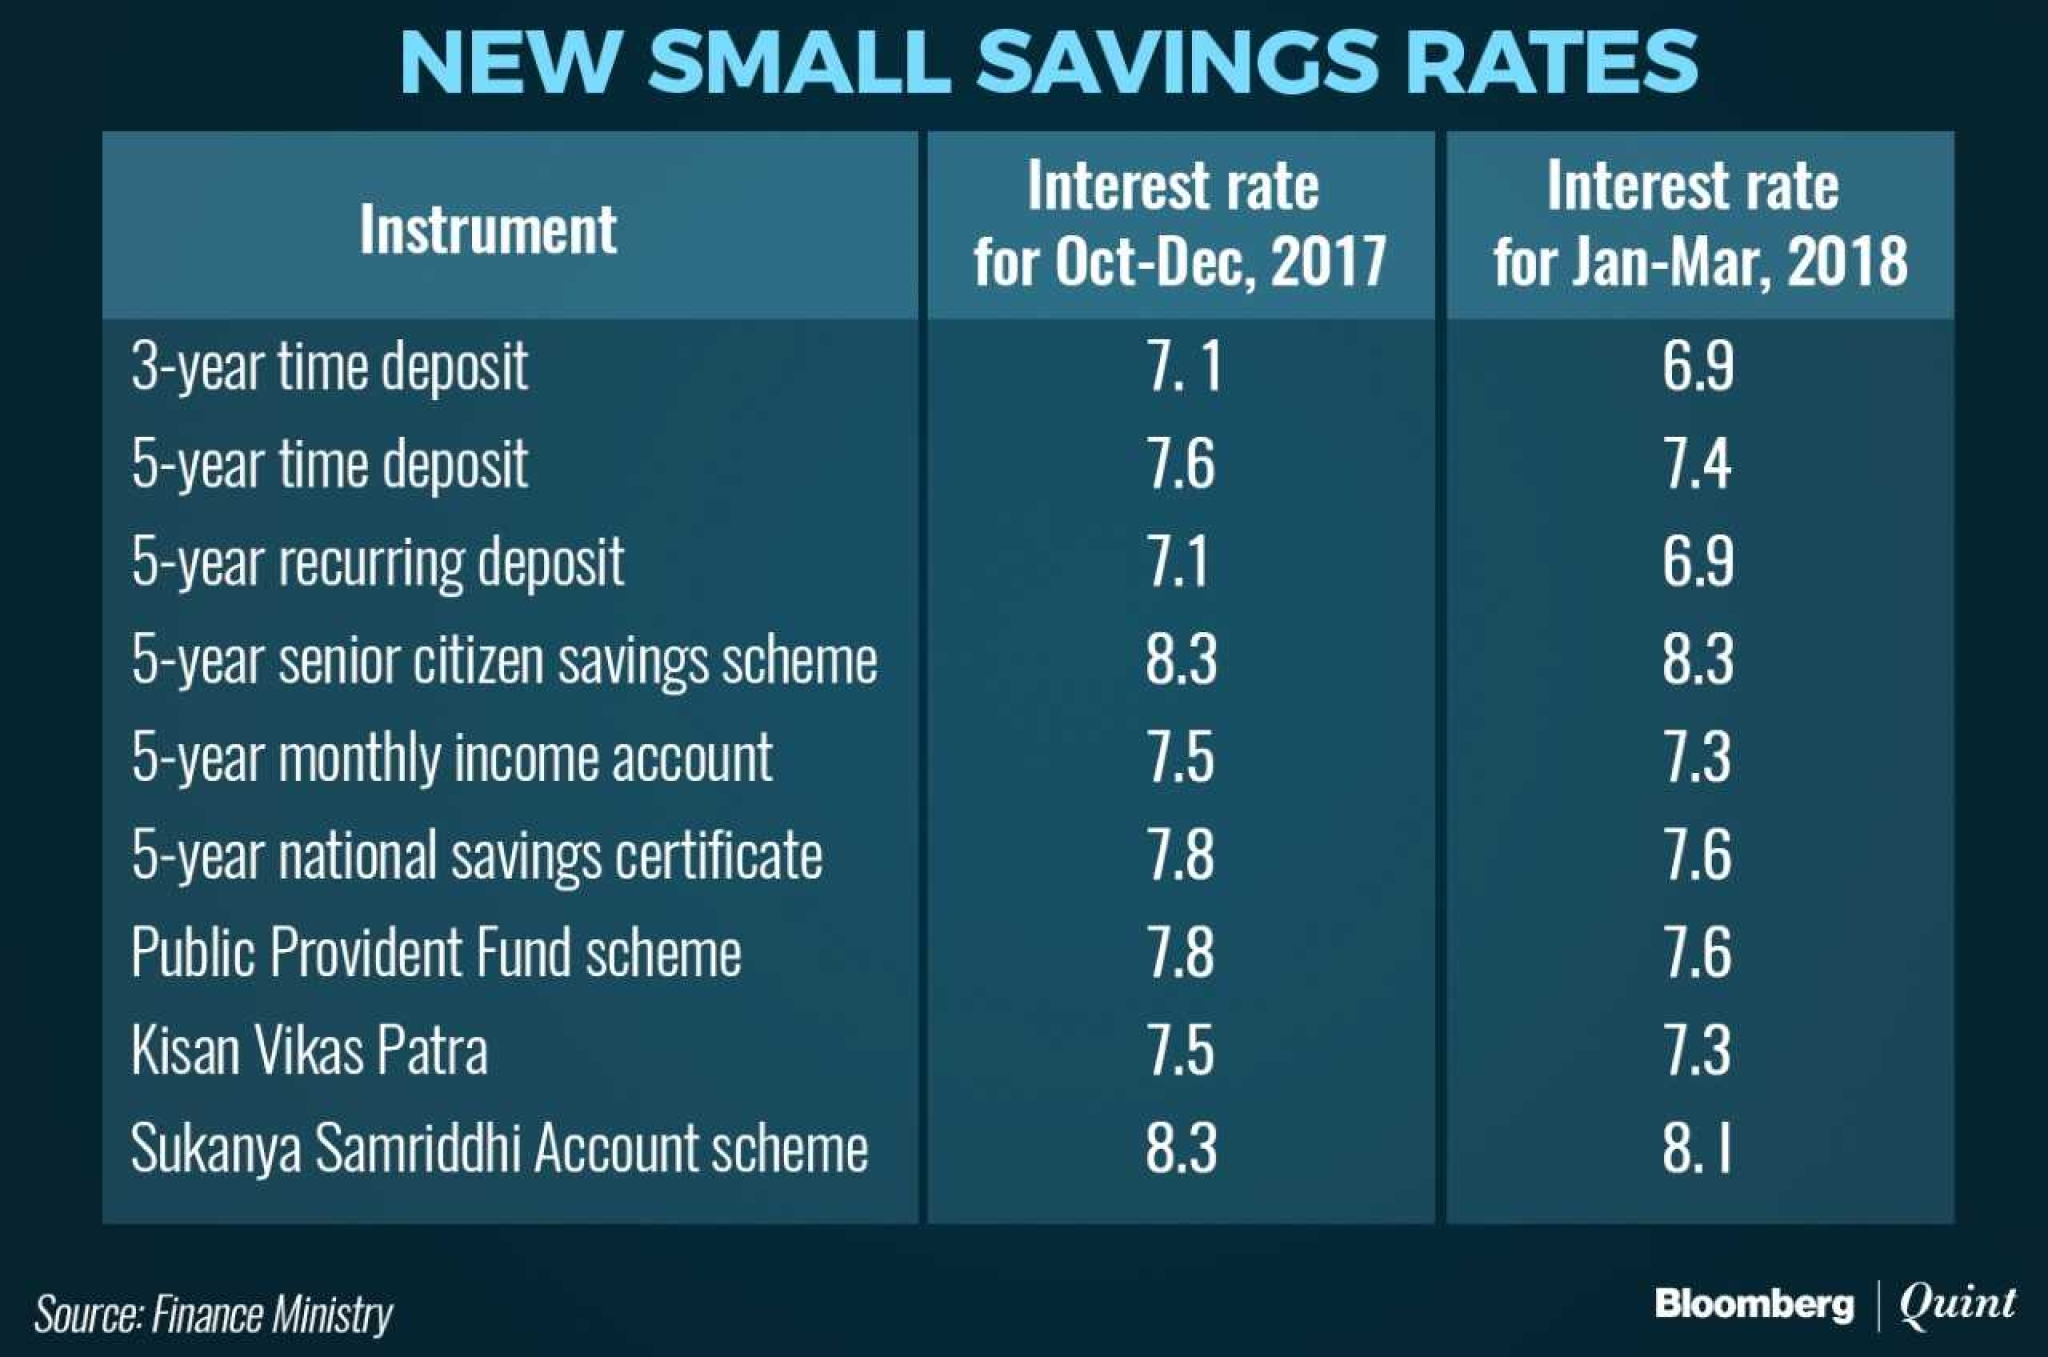 Small savings schemes interest rates lowered by 20 basis points investments in the public provident fund scheme will fetch a lower annual rate of 76 percent the same as 5 year national savings certificate 1betcityfo Choice Image